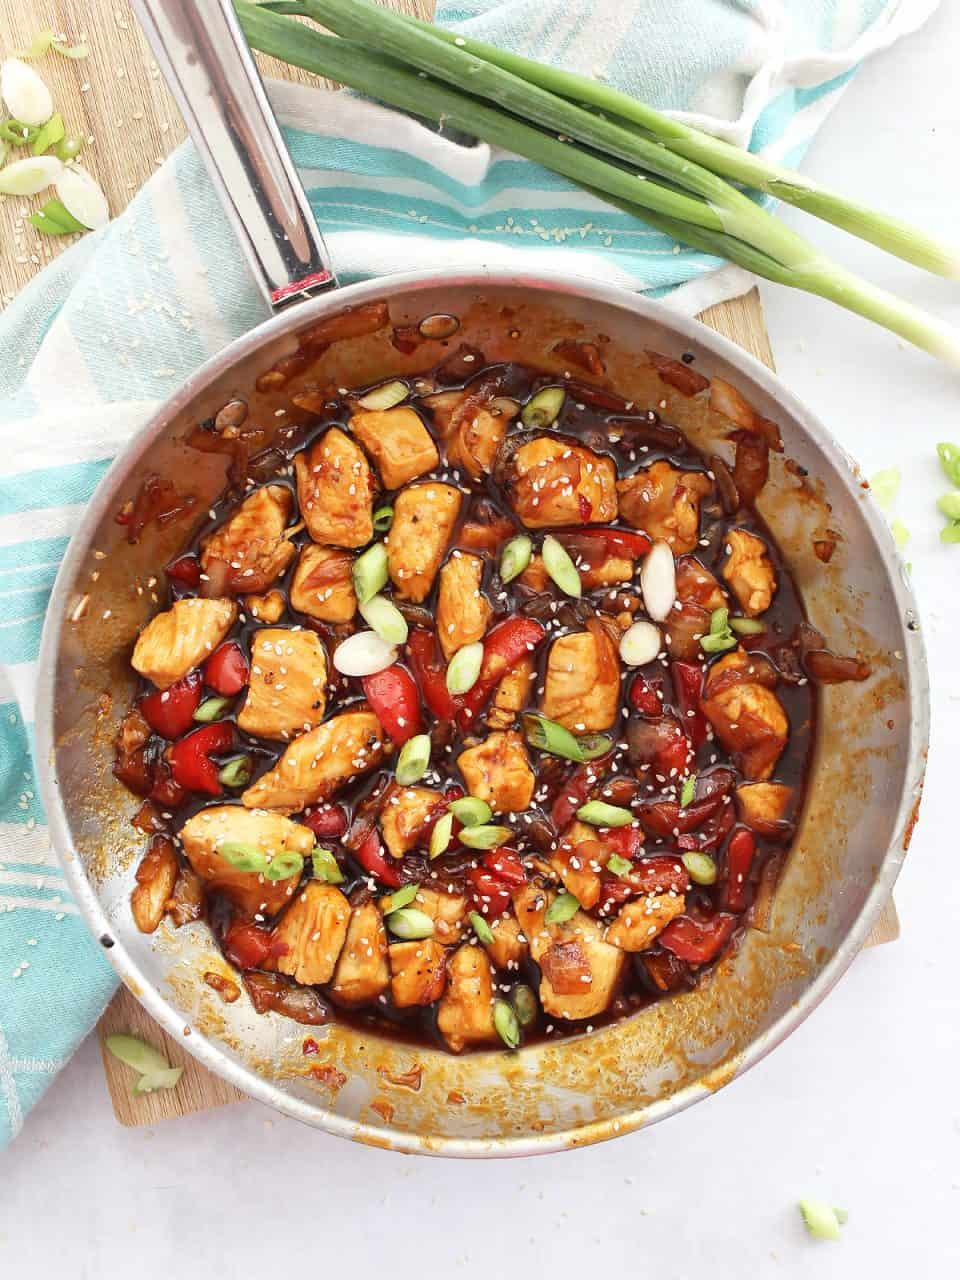 Honey sriracha chicken in a silver skillet, garnished with green onions and sesame seeds.